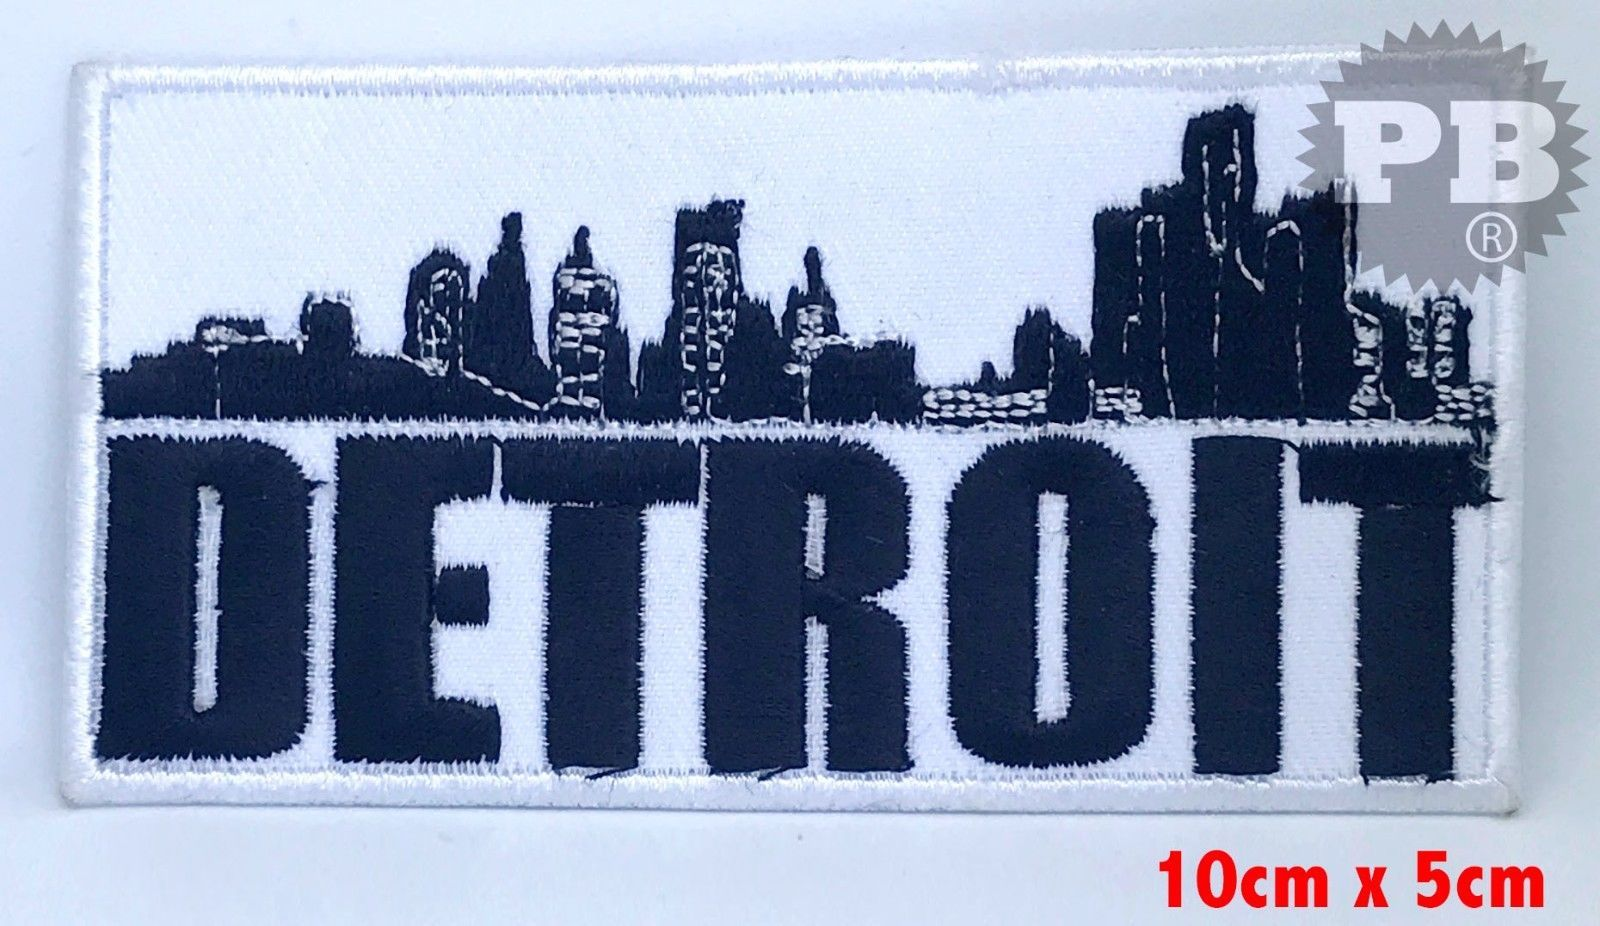 3 12 Detroit City Logo Iron Or Sew On Embroidered Patch Badge Uk Seller Ebay Home Garden City Logo Logos Patches